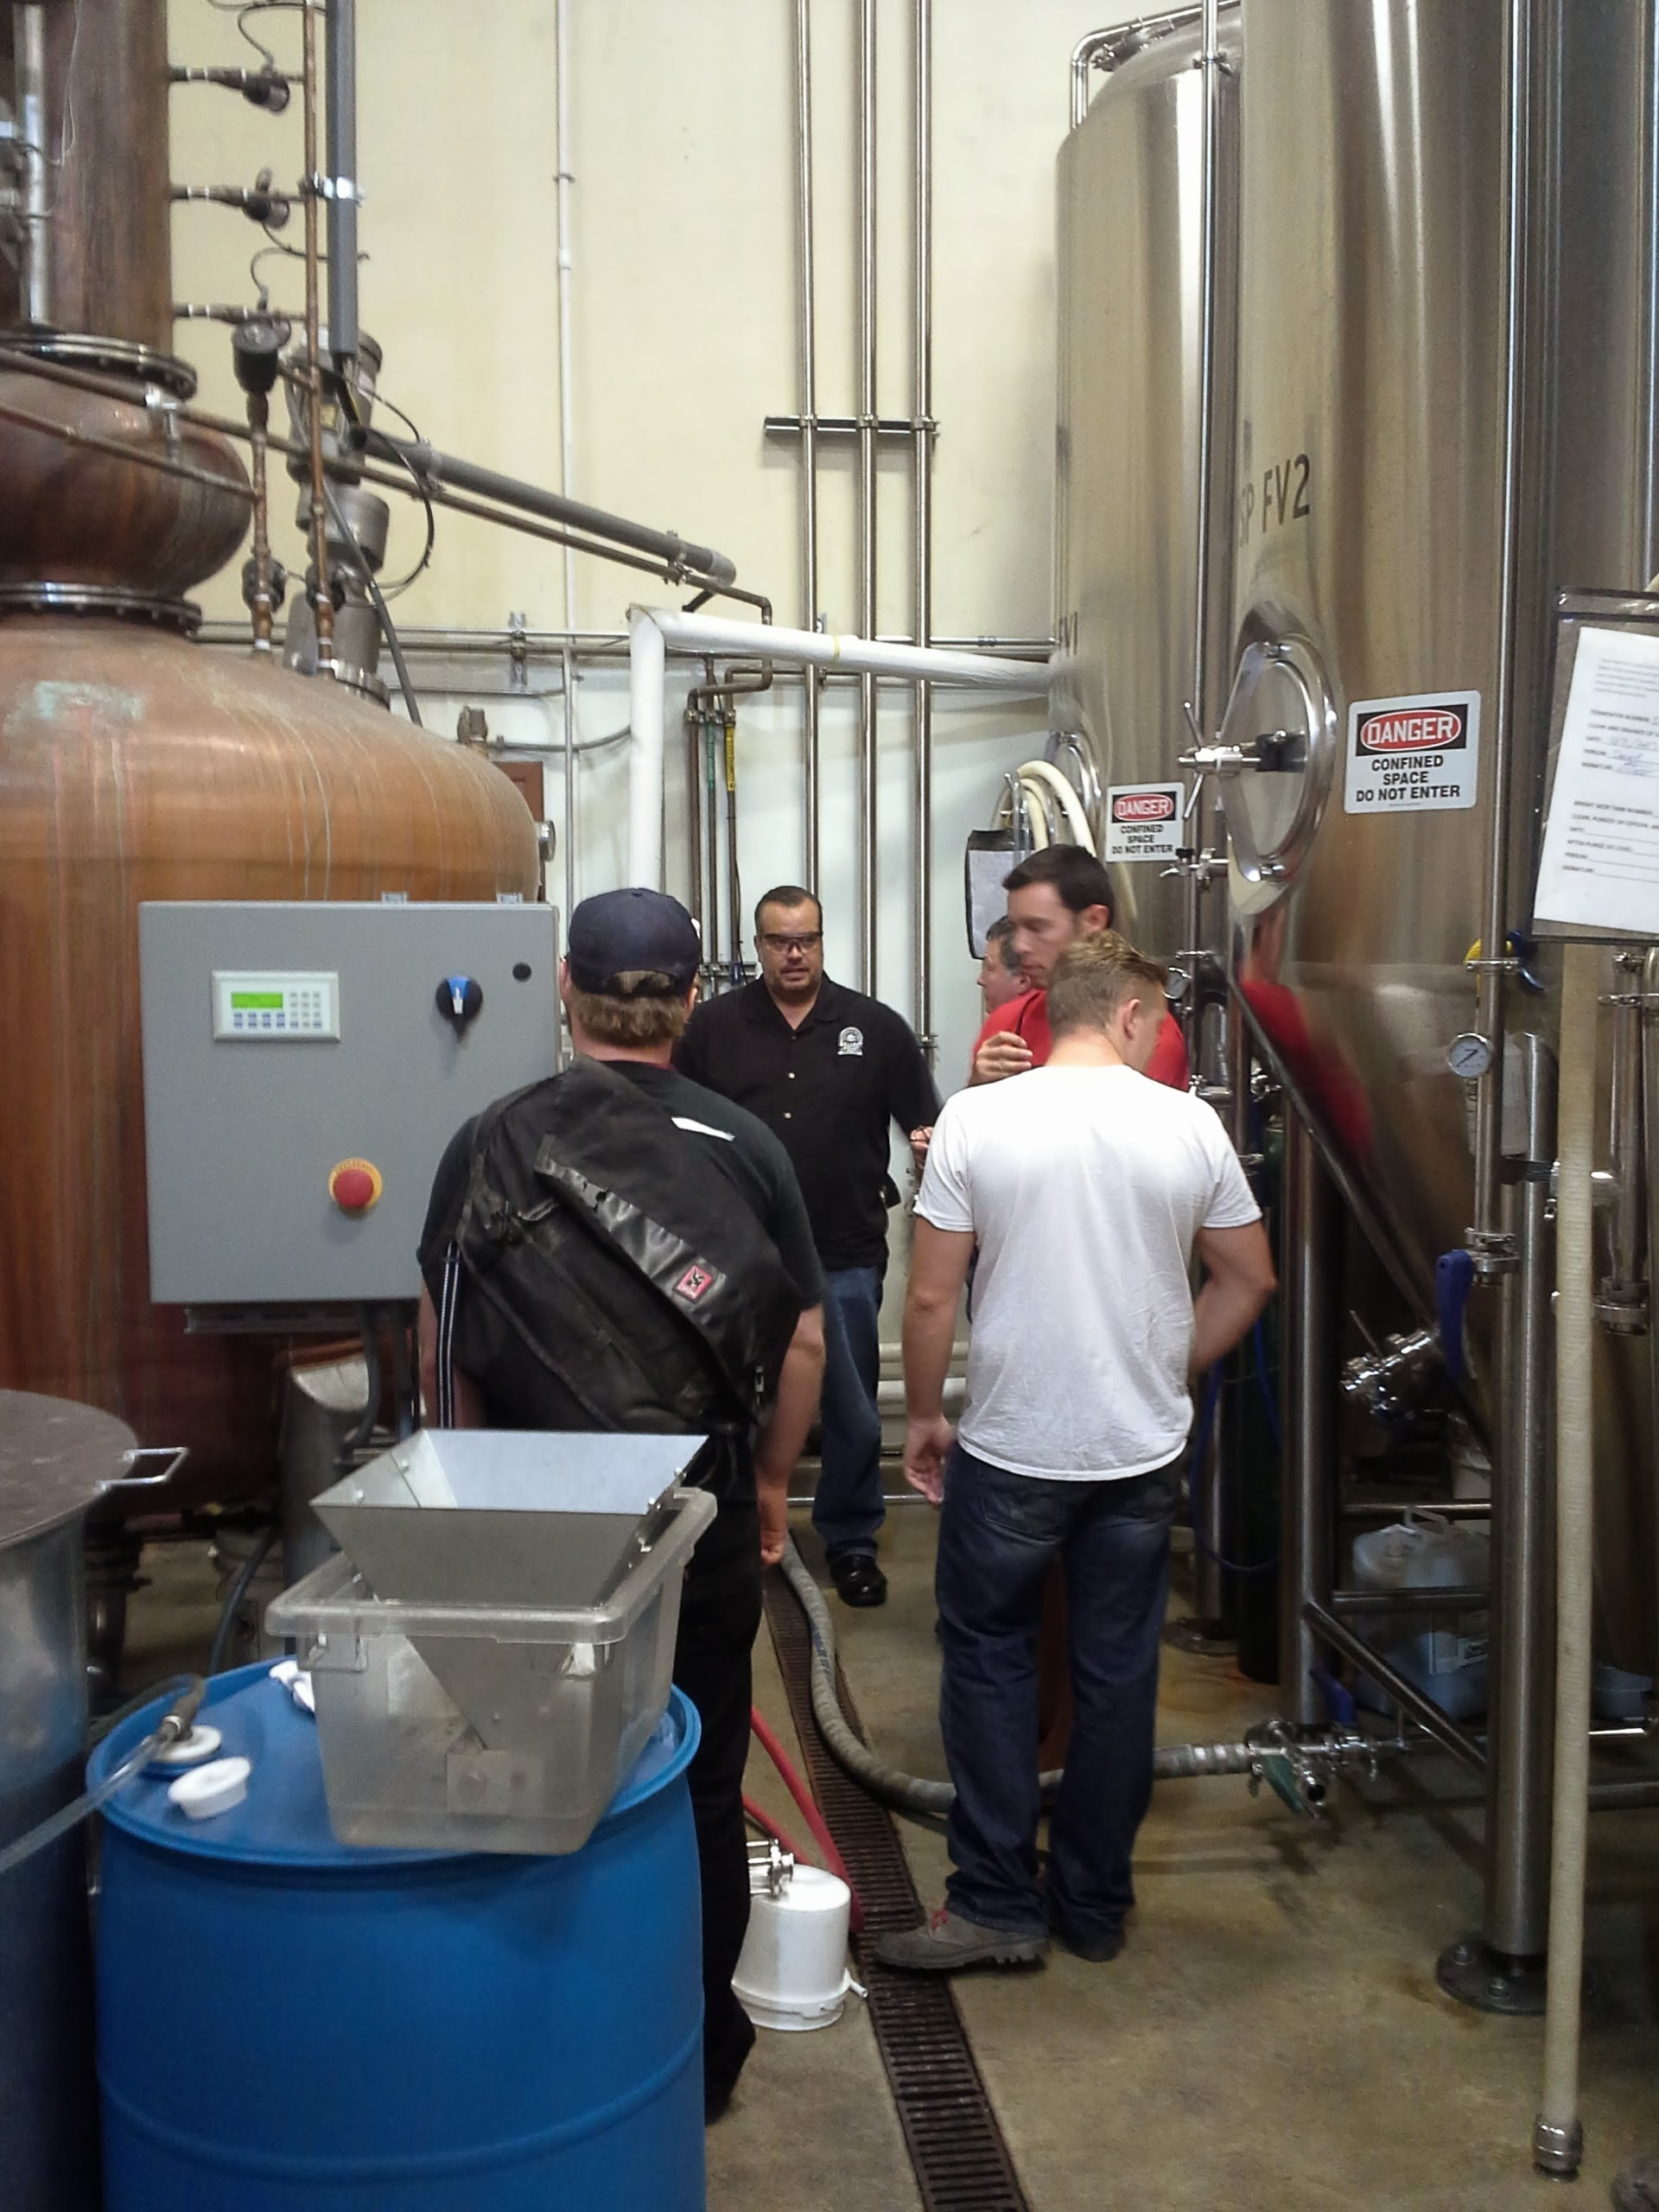 Participants discuss yeast and fermentation practices at Ballast Point Spirits